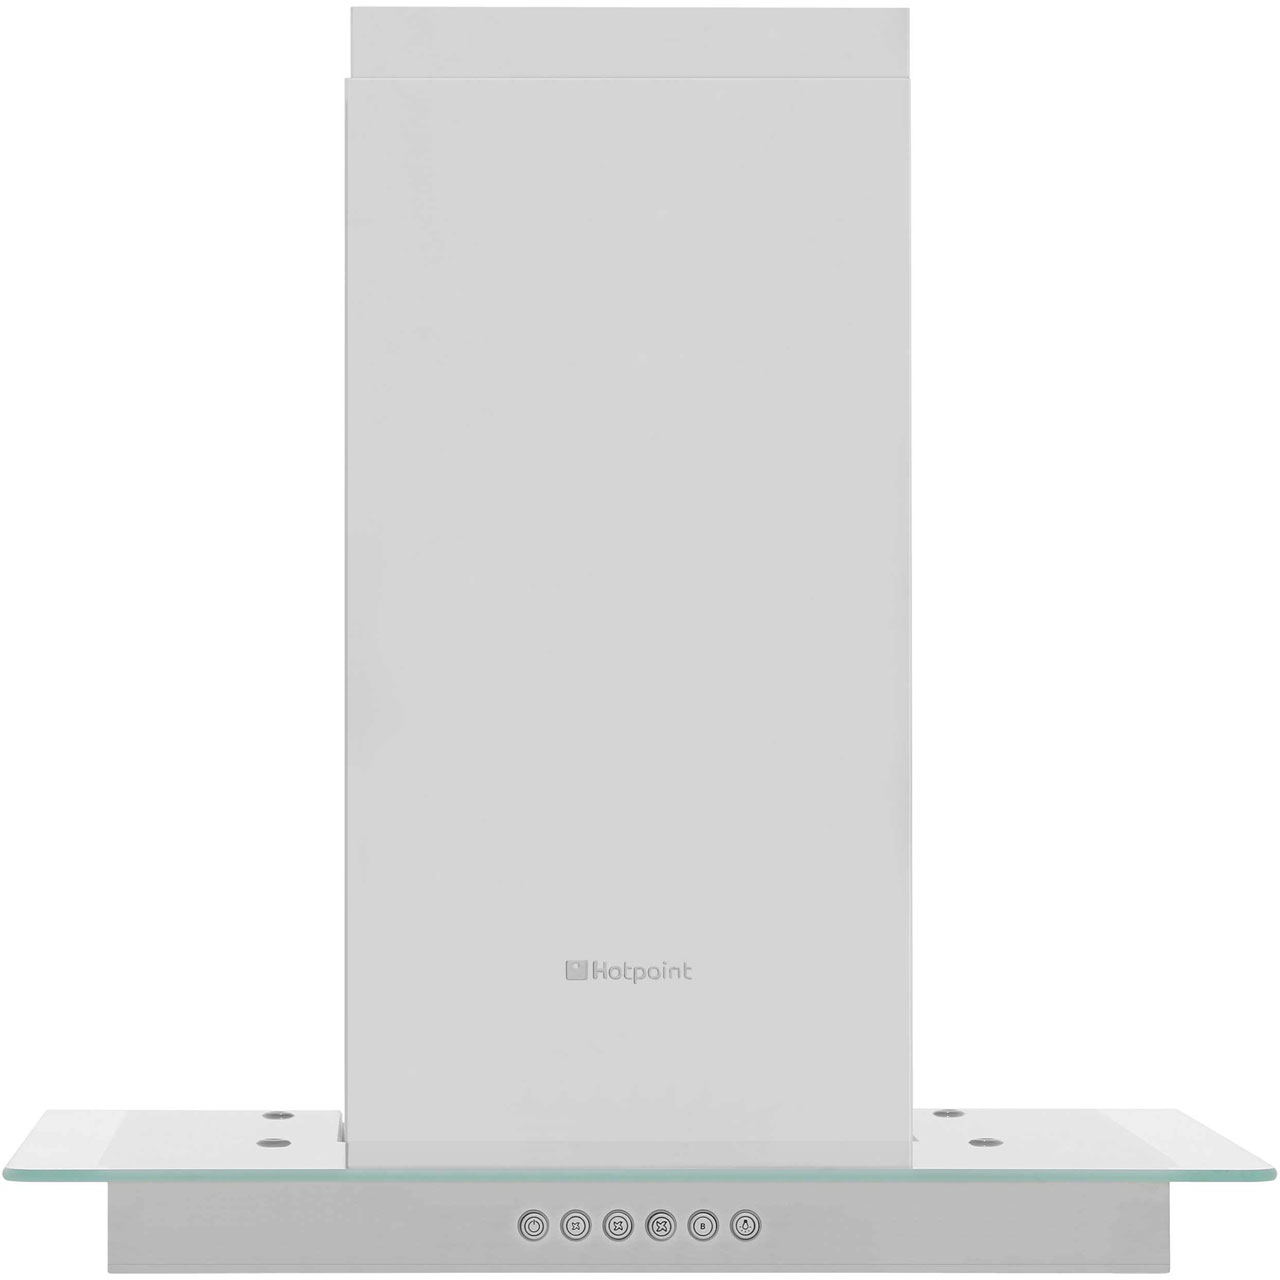 Hotpoint HDF65SAB 60 cm Chimney Cooker Hood - Stainless Steel